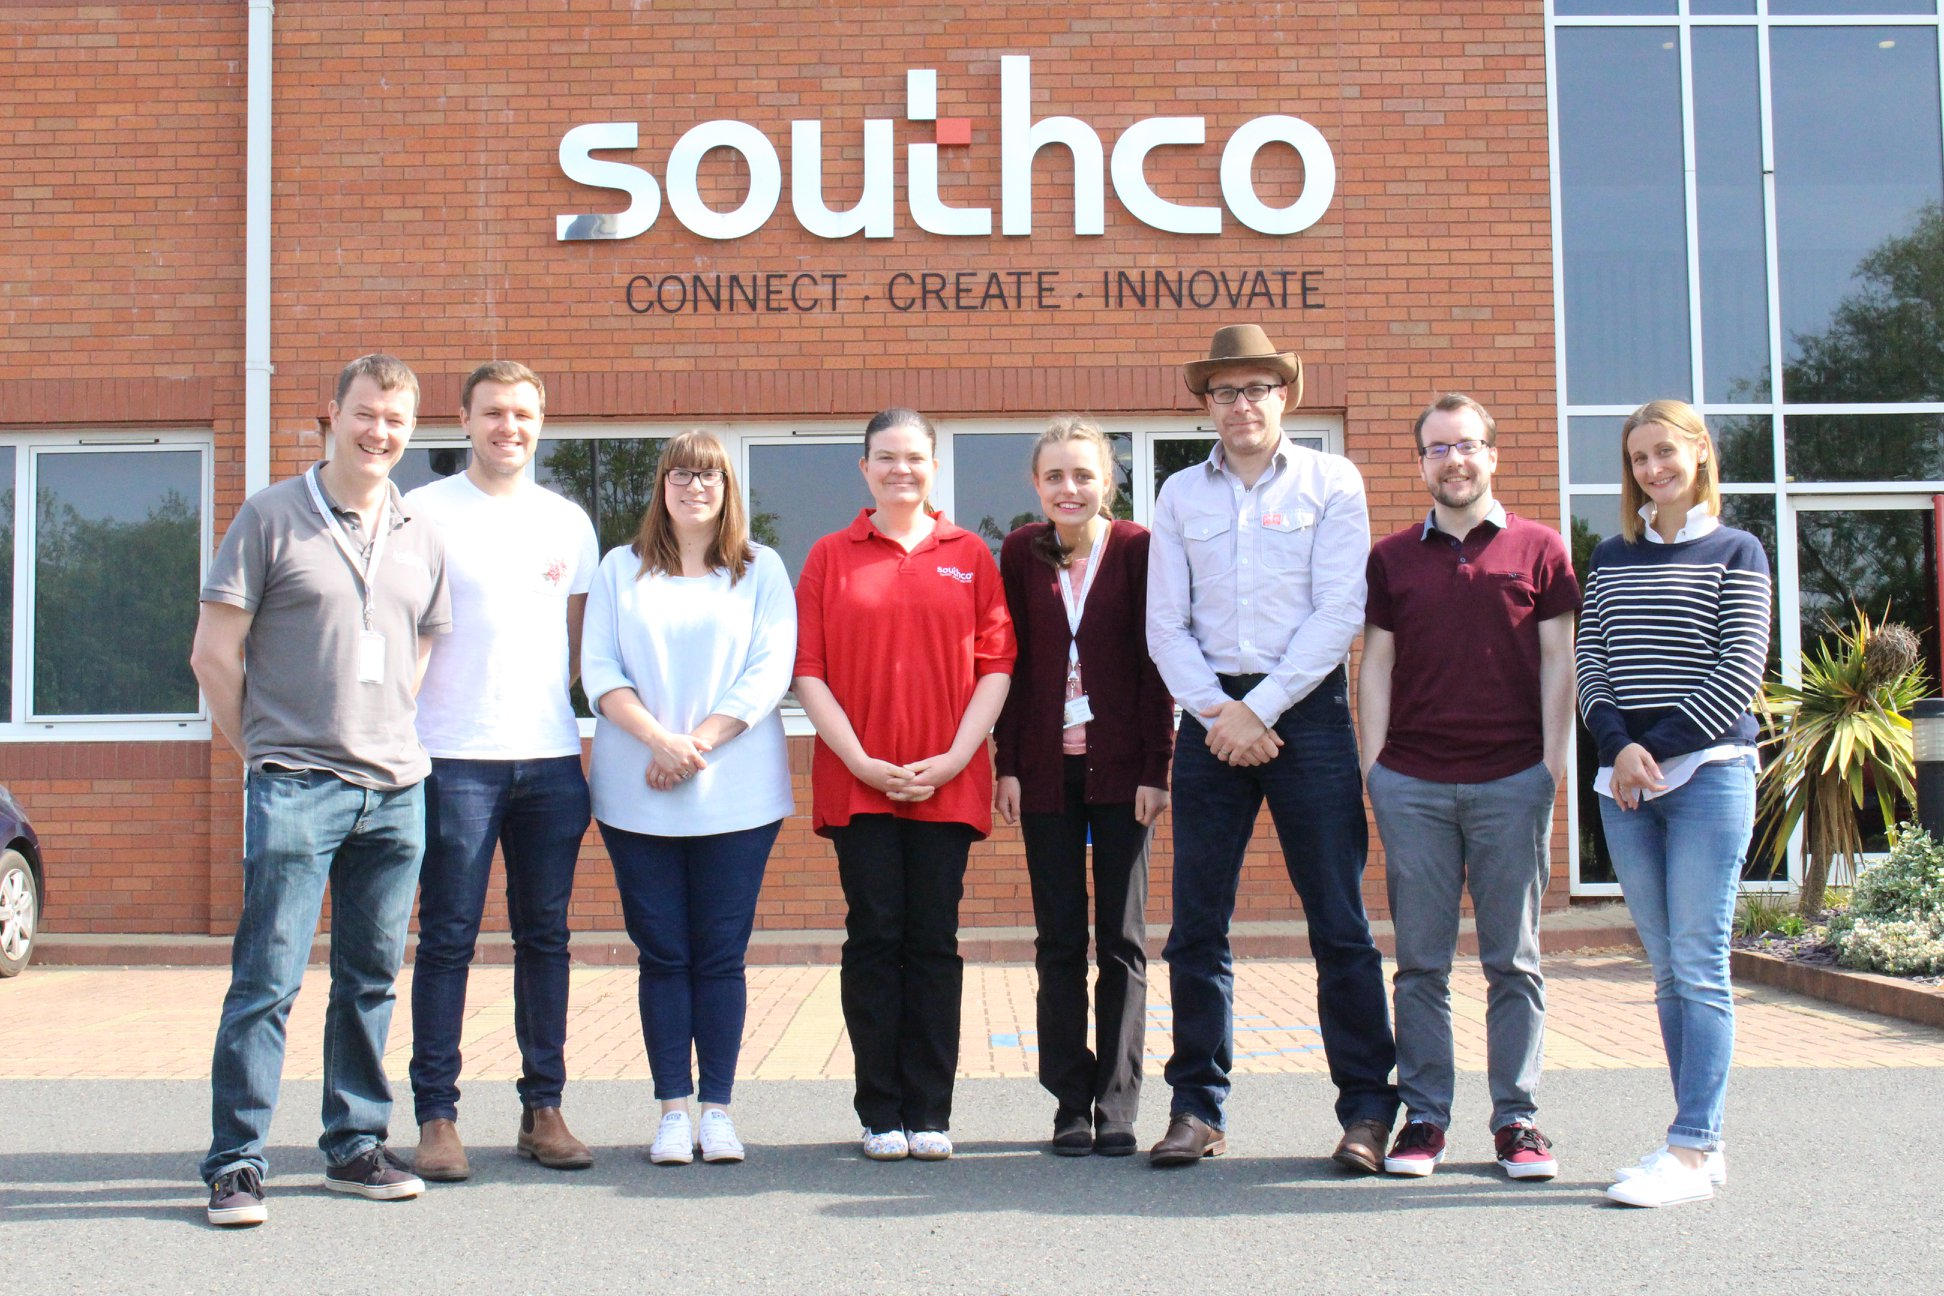 Concordville-Based Southco Launches Initiative to Refresh Its Brand